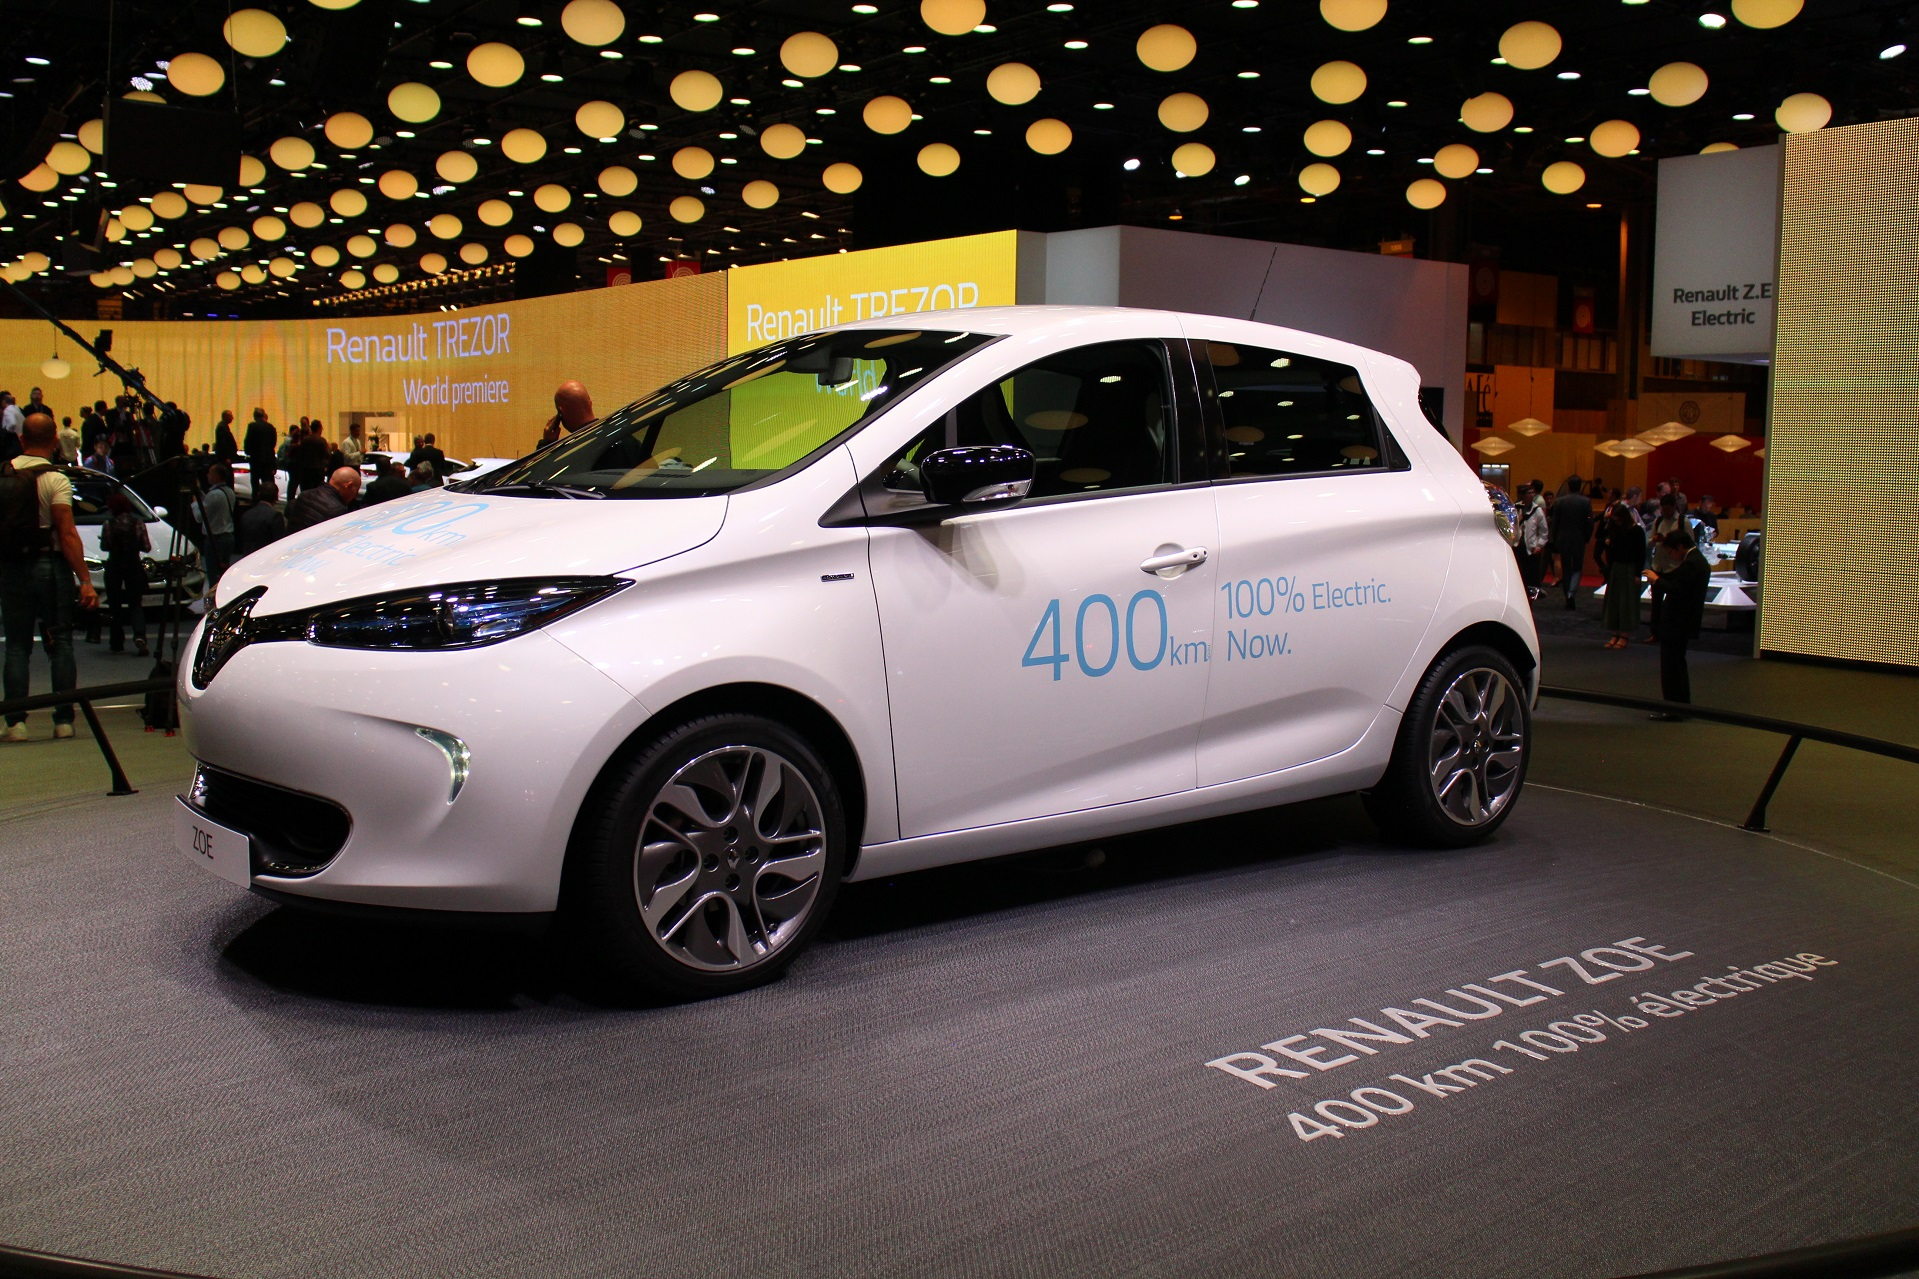 Electric Car Battery Lease Renault Zoe Electric Car Owners Can Double Their Range By